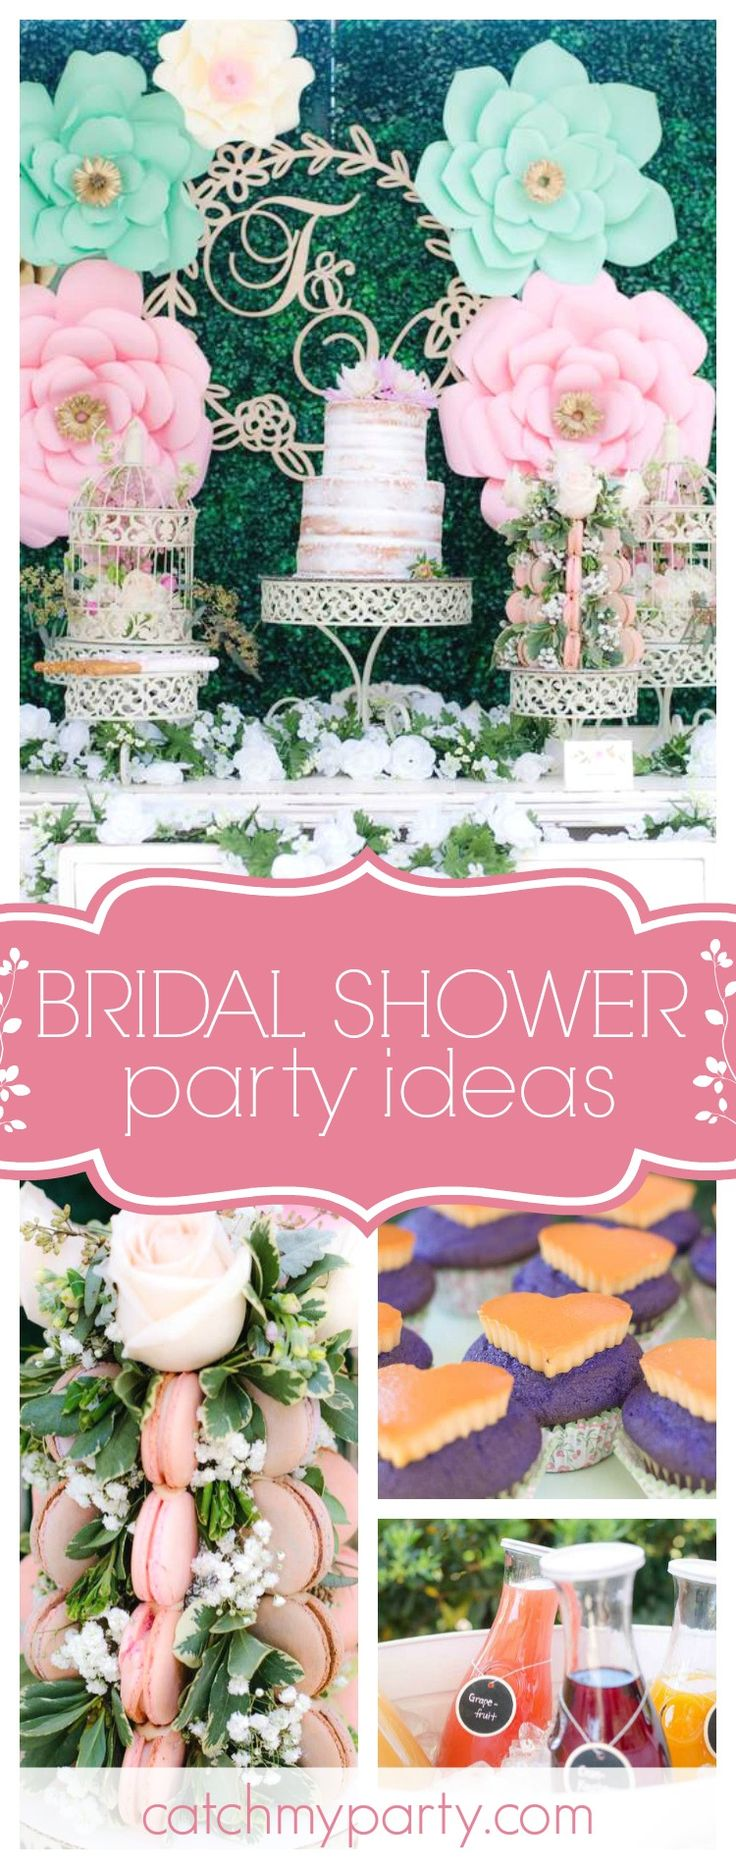 step into this gorgeous vintage garden bridal shower the desert table is so elegant